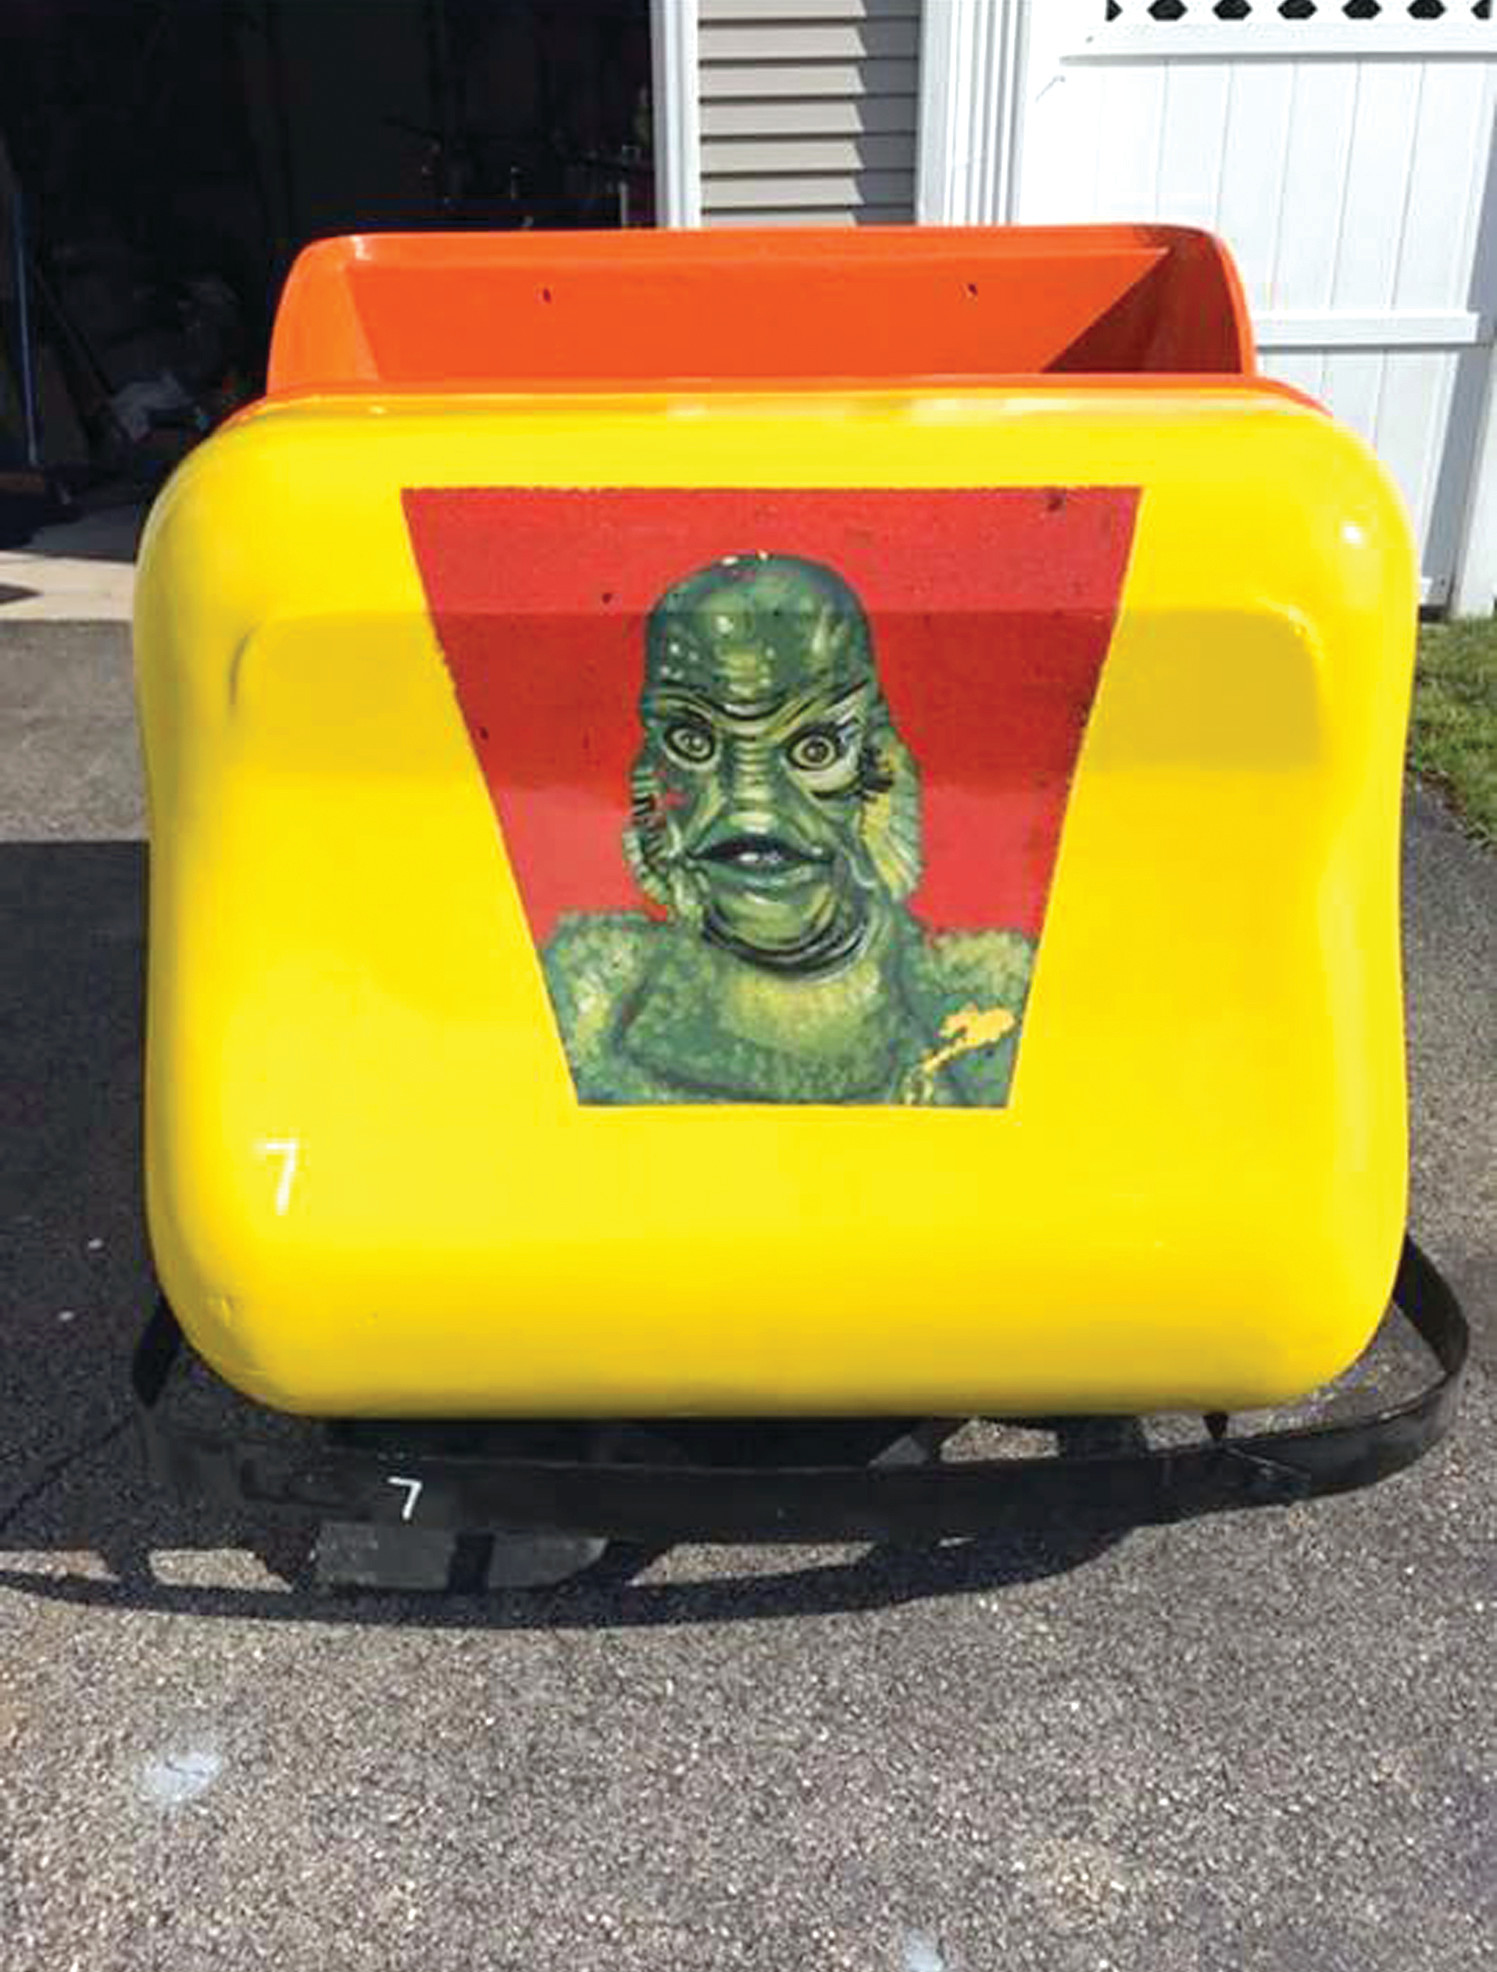 AFTER: The gleaming Creature from the Black Lagoon car after being restored. The artwork pictured on the front is original.